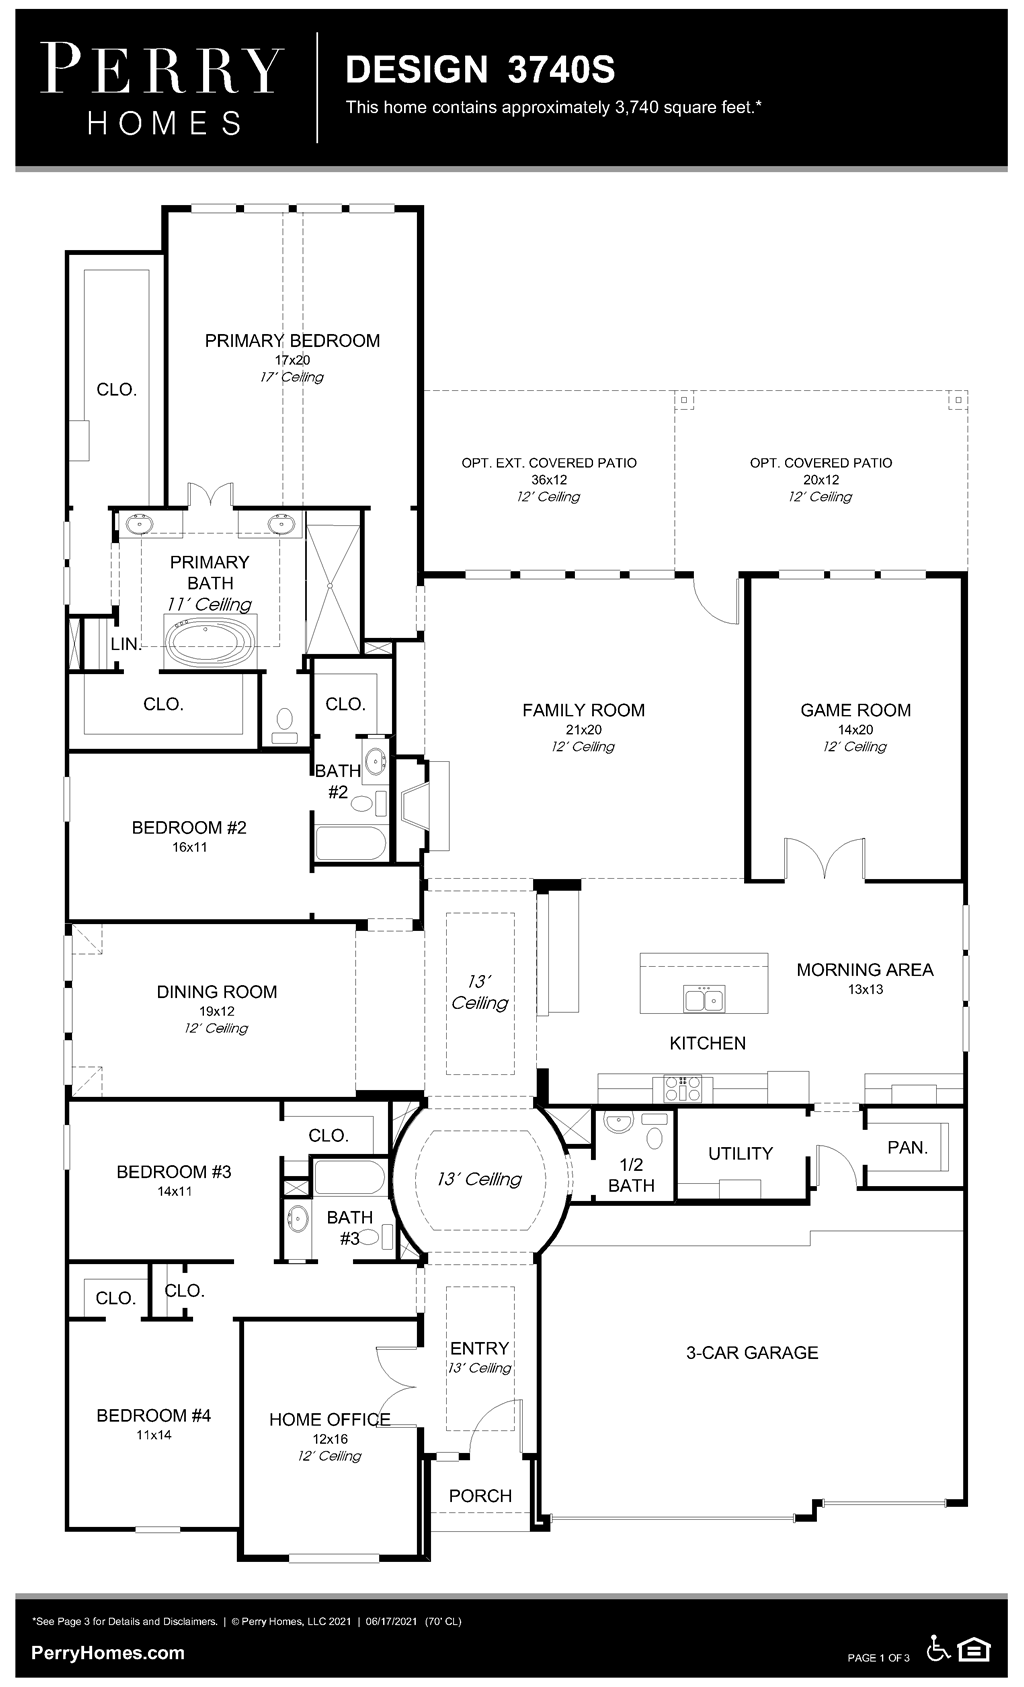 Floor Plan for 3740S